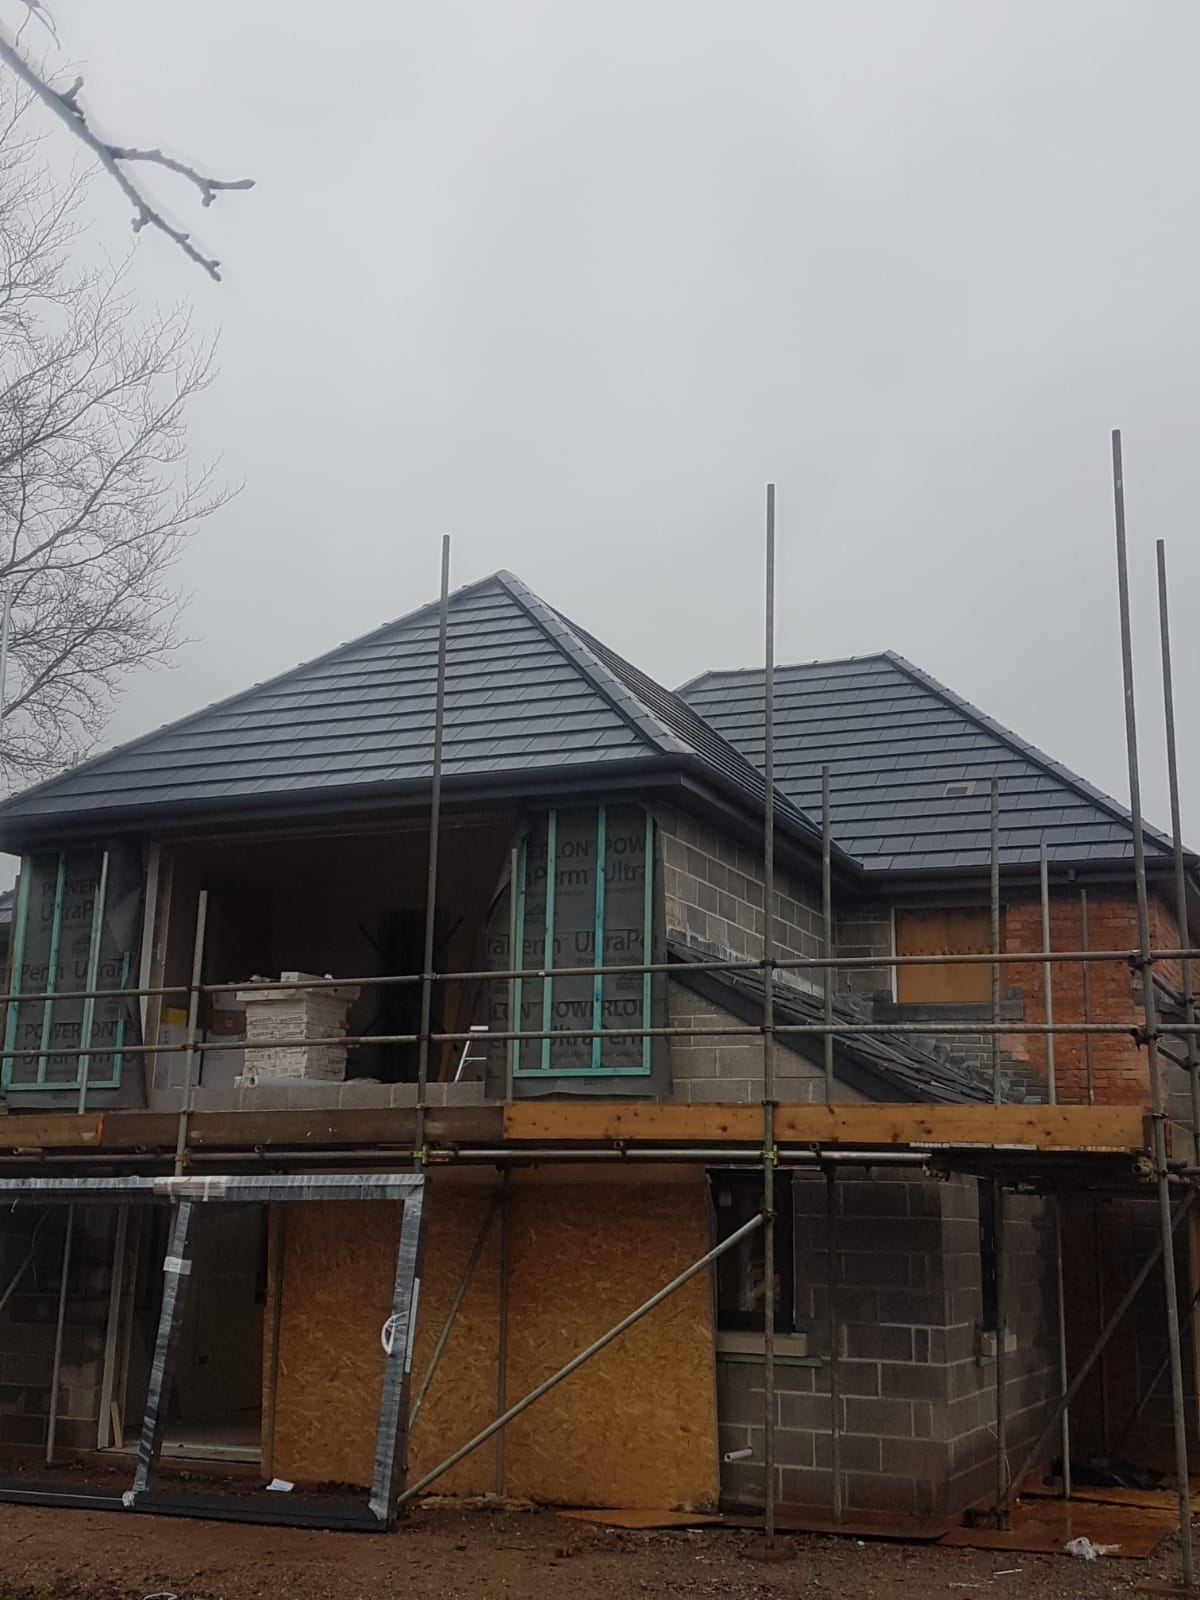 As part of extension and renovation works this property in Blagdon was given a new roof